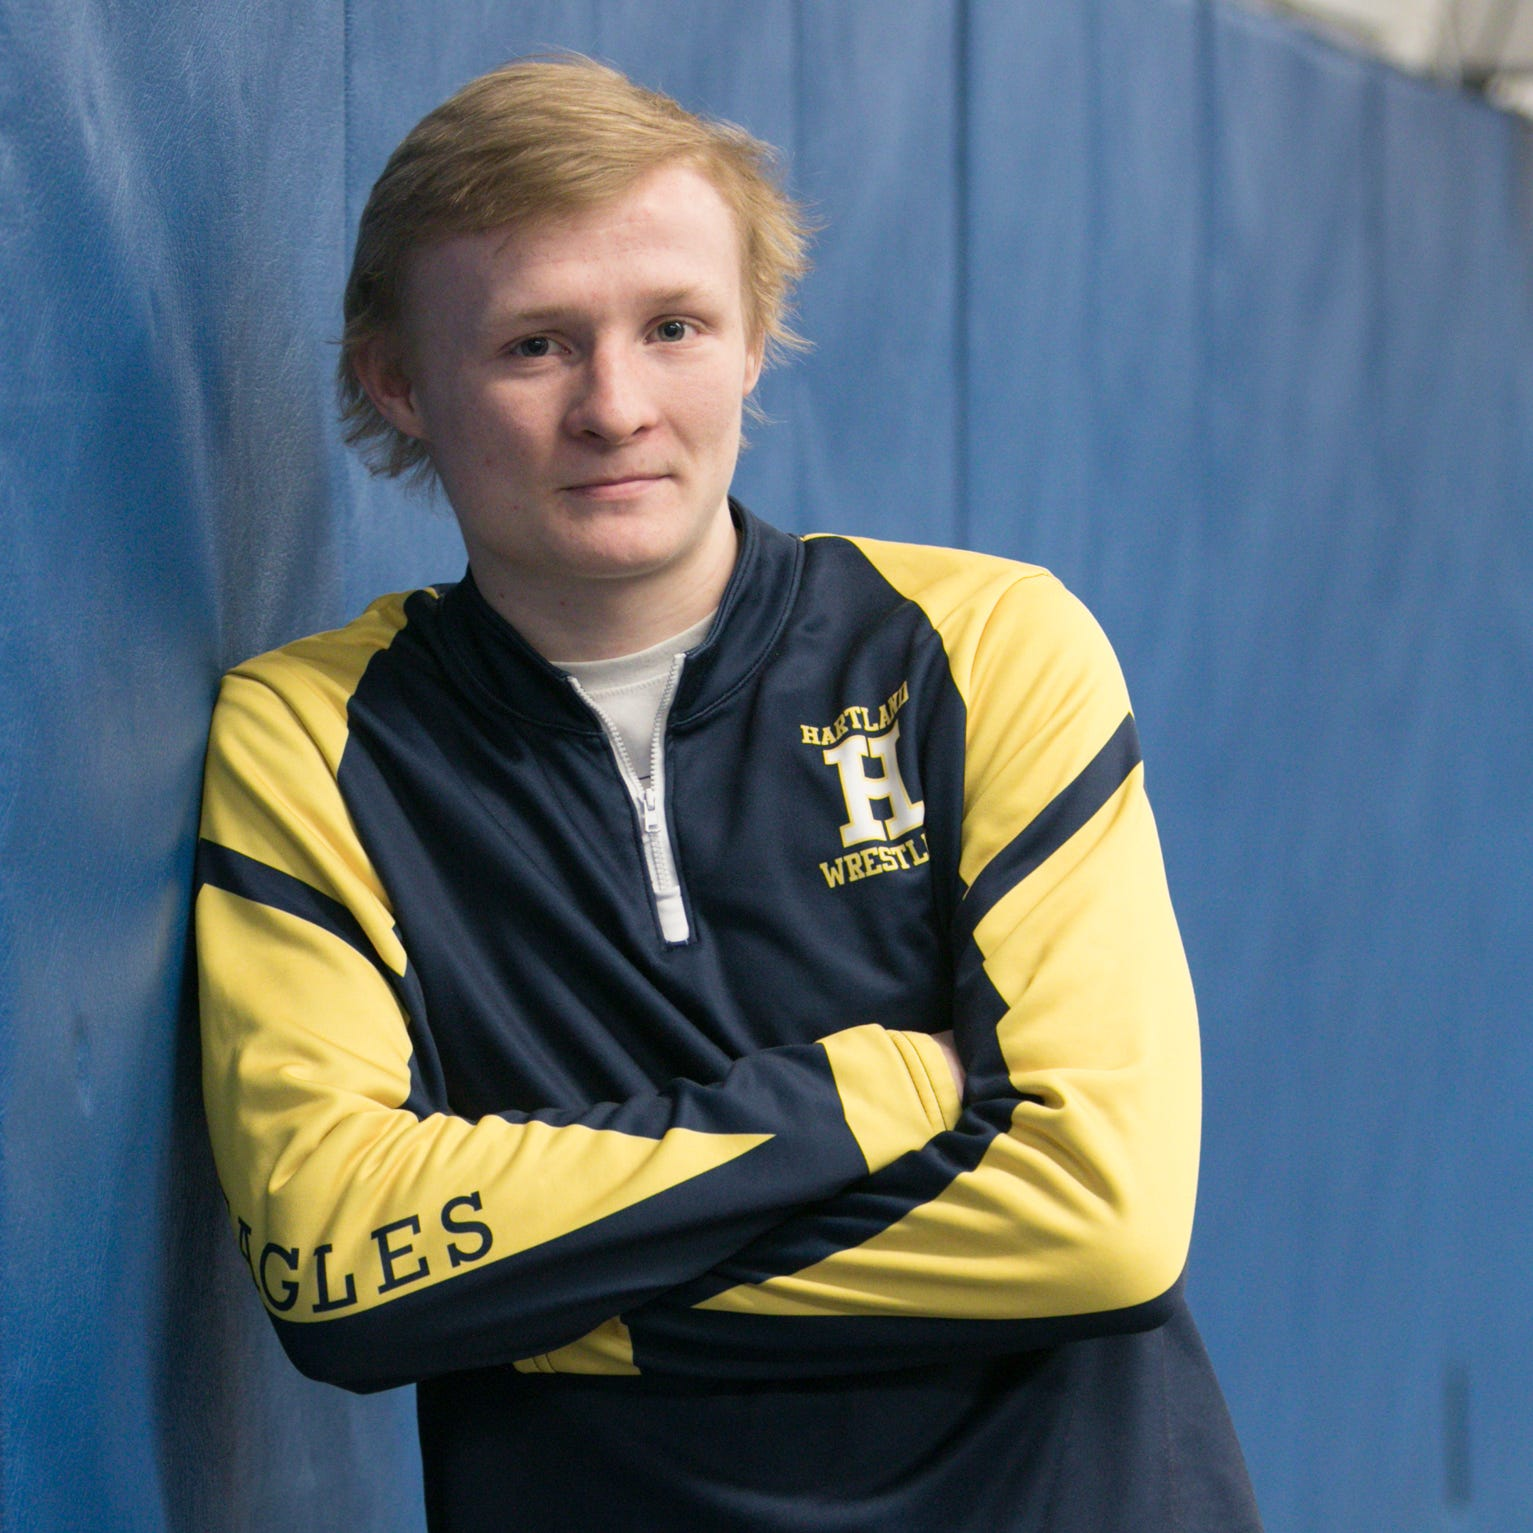 Wrestler of the Year Kyle Kantola of Hartland worked nonstop to become state champion